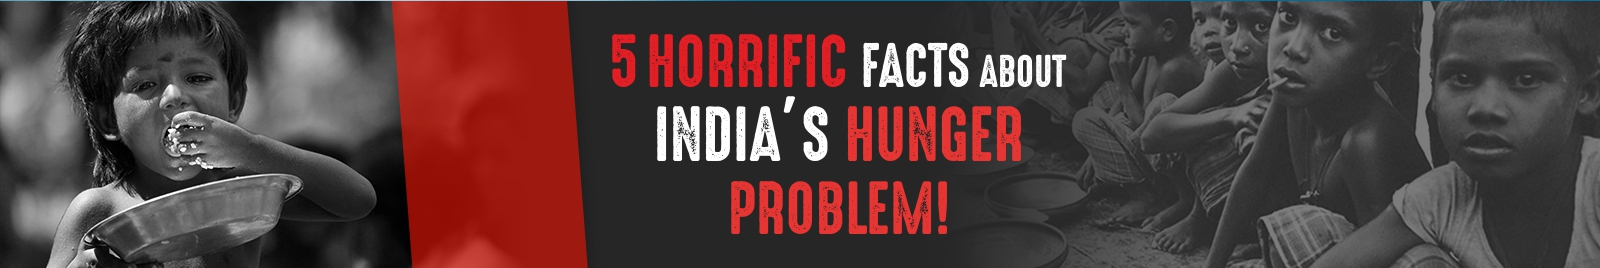 5 horrific facts about India's hunger problem